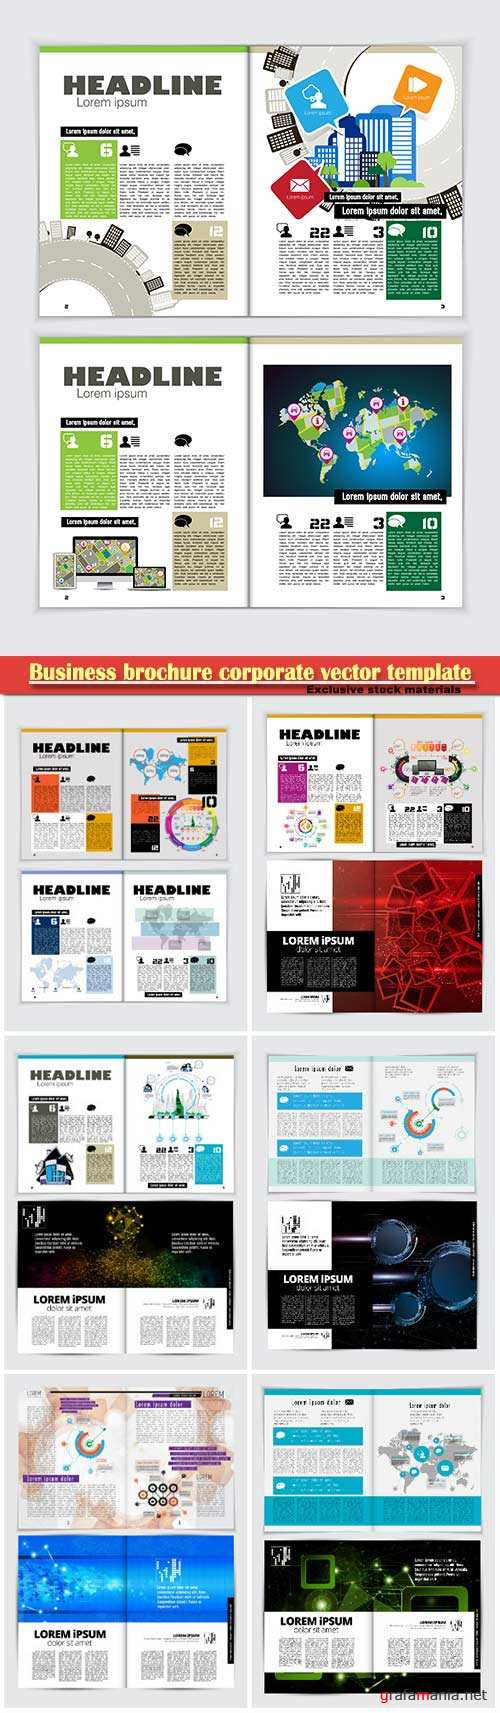 Business brochure corporate vector template, magazine flyer mockup # 19